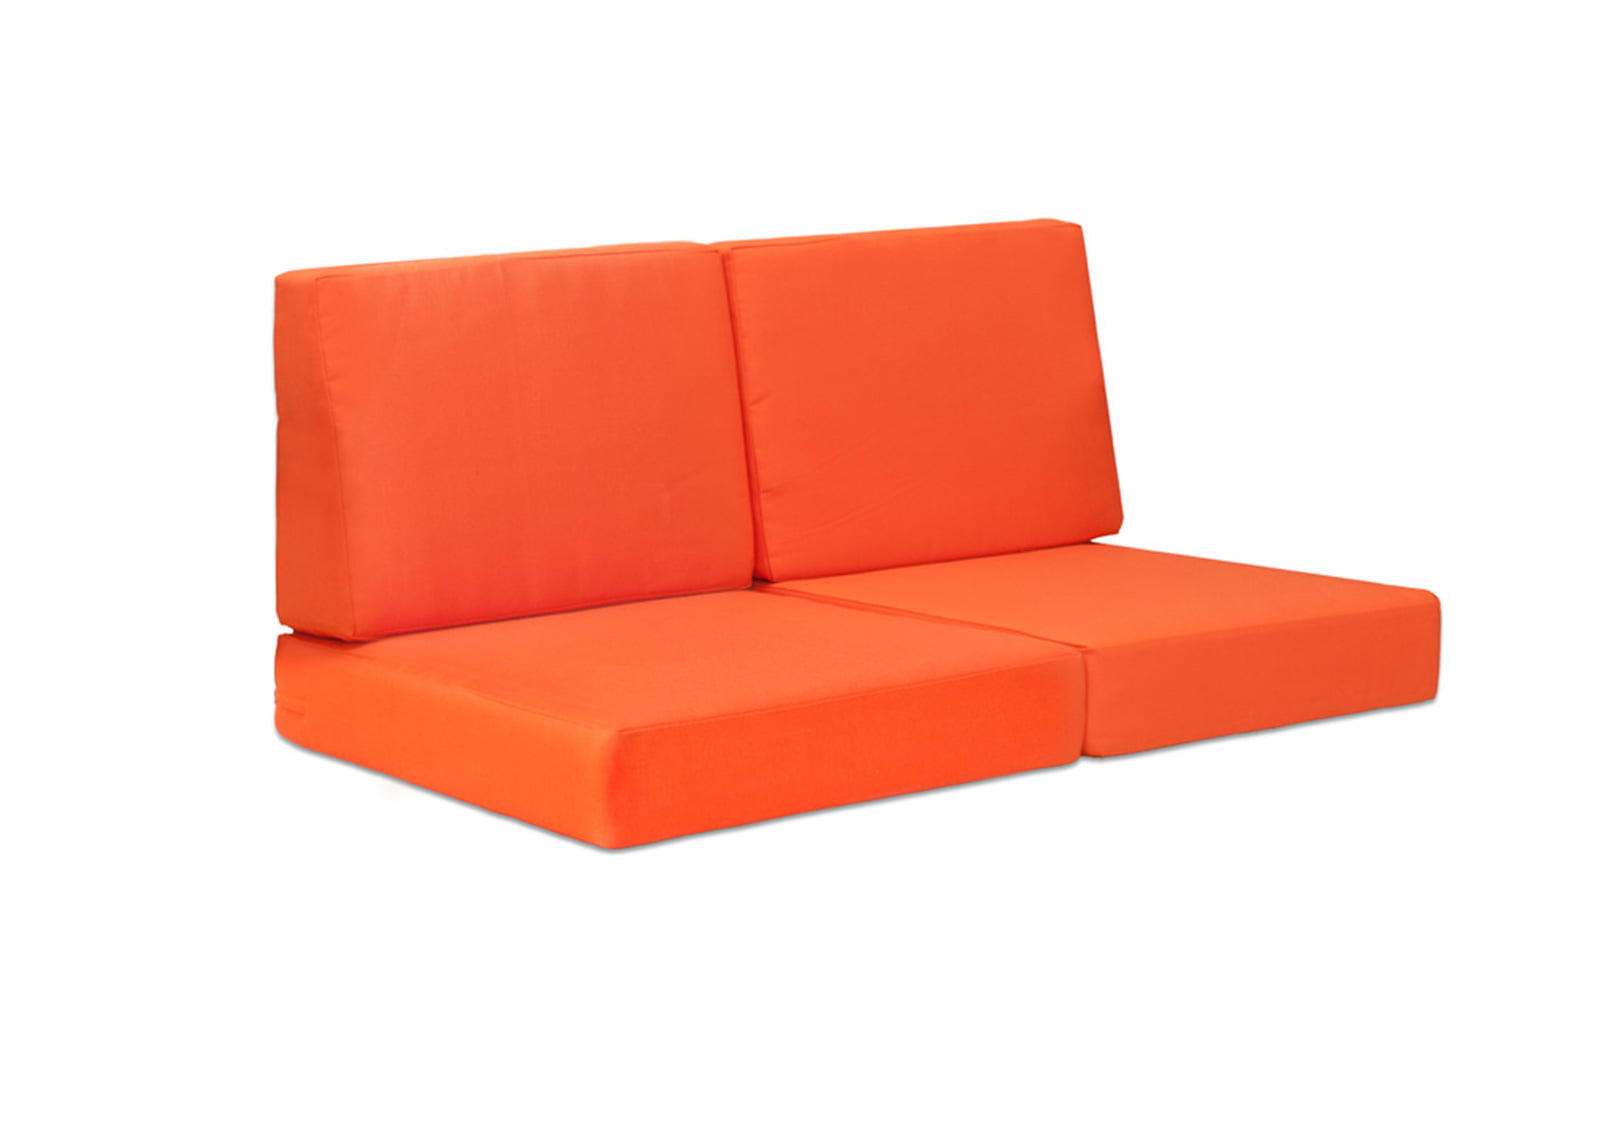 Cosmopolitan Sofa Cushions Orange Furnishplus